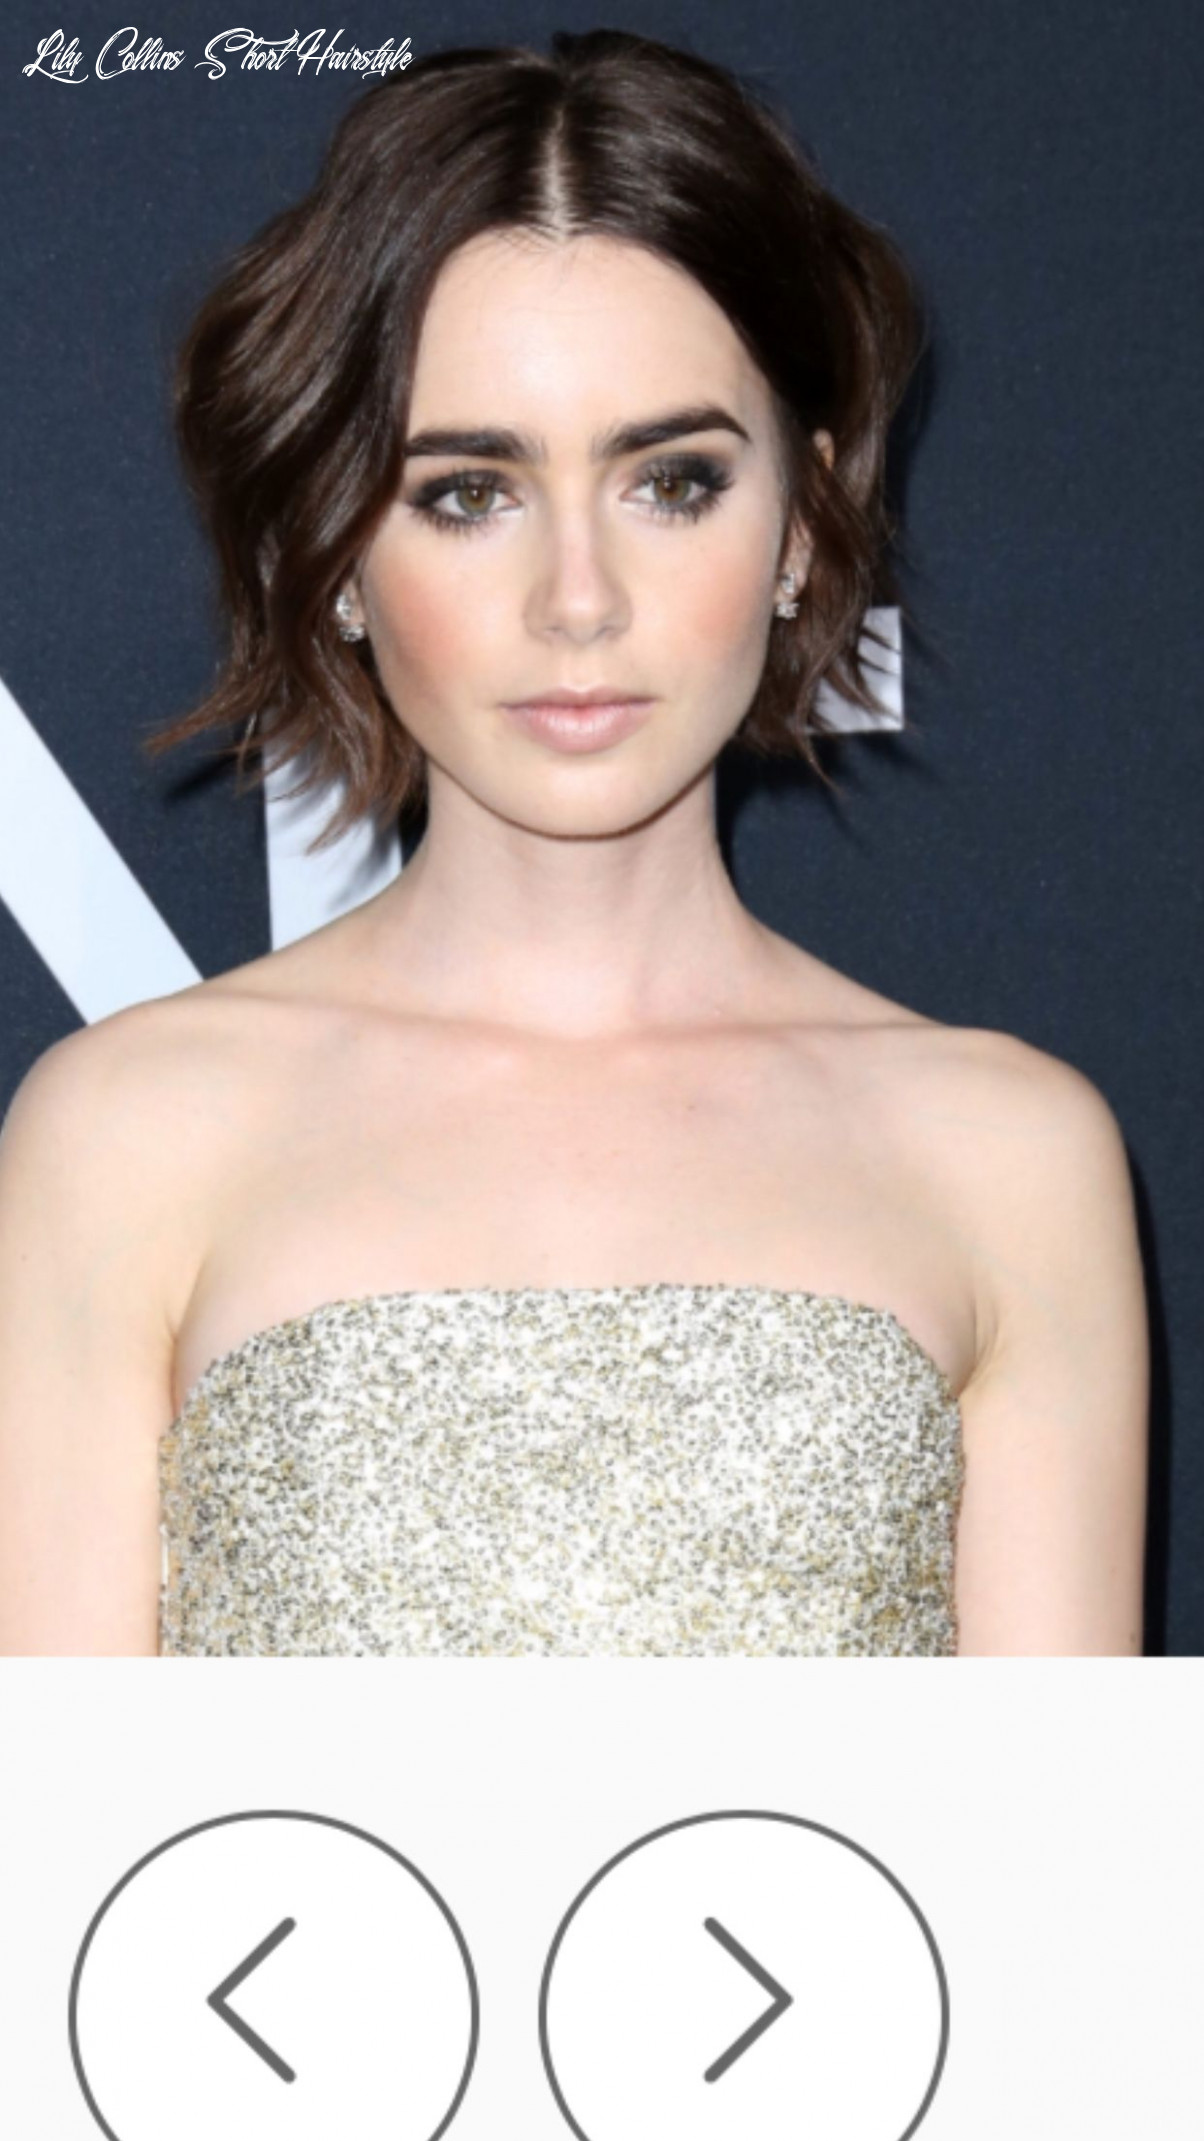 Short choppy layers | lily collins short hair, short hair styles